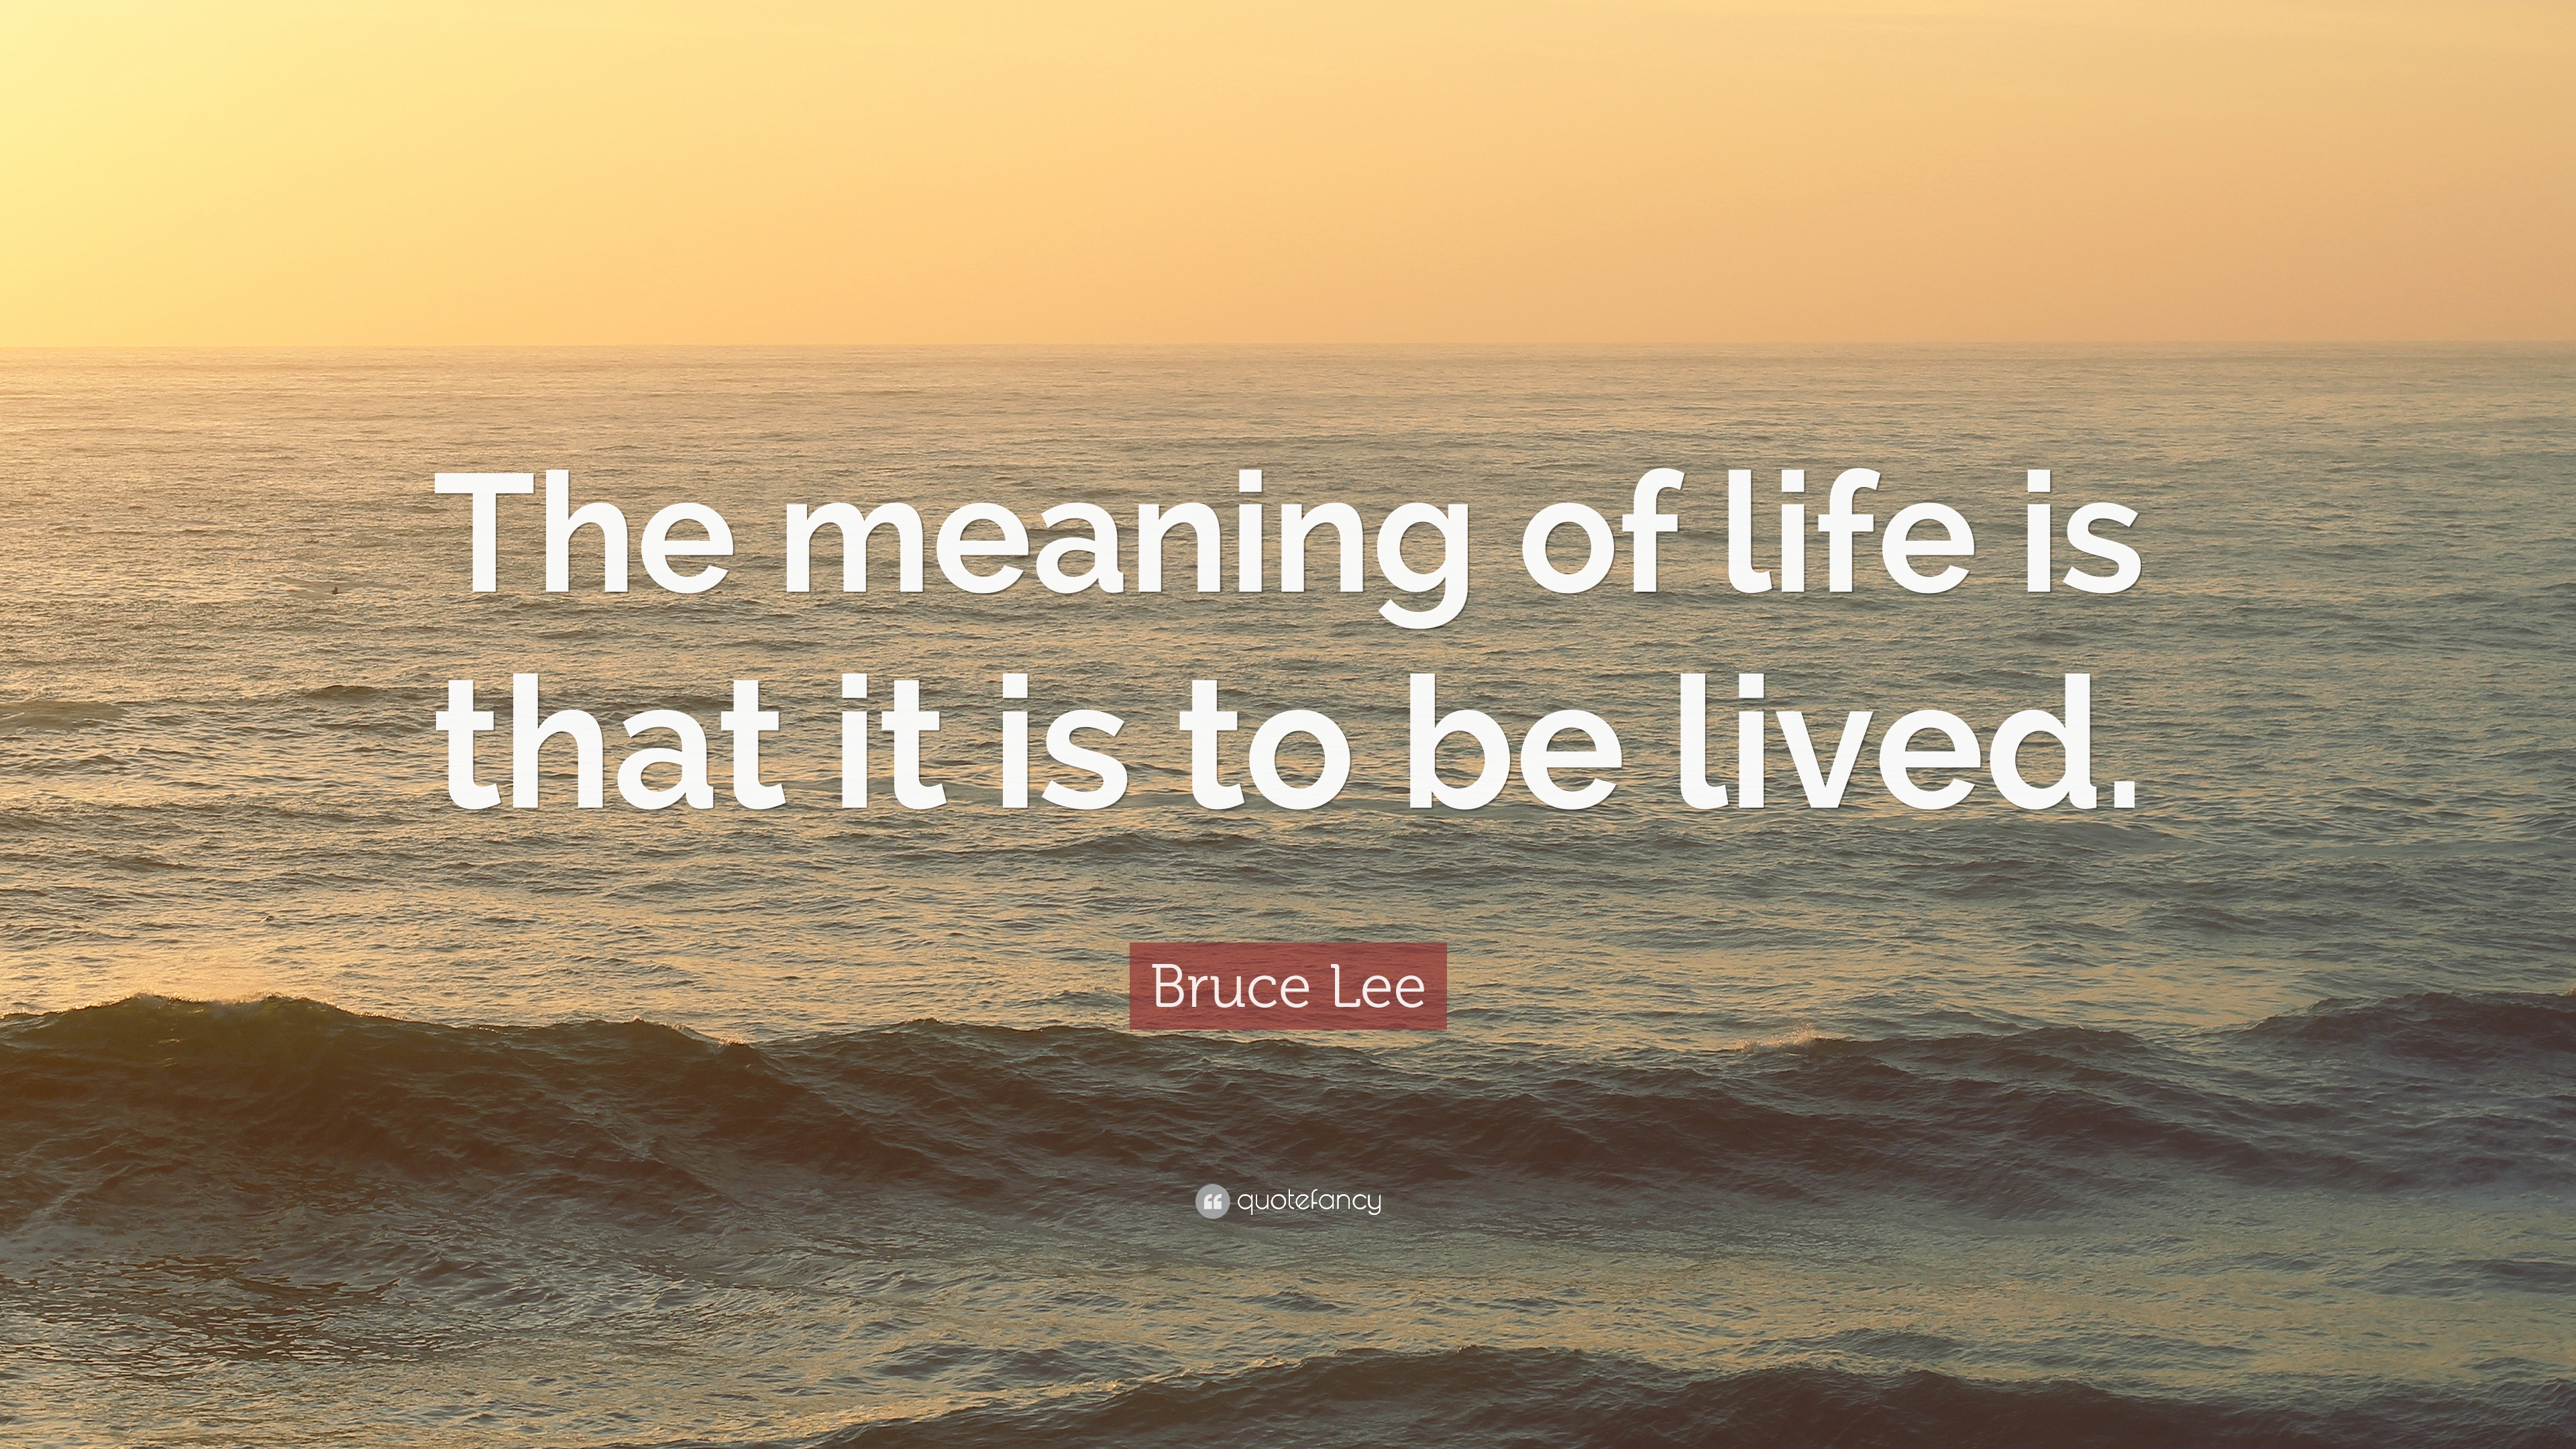 Meaning Of Life Quotes Enchanting Meaning Of Life Quotes 40 Wallpapers  Quotefancy